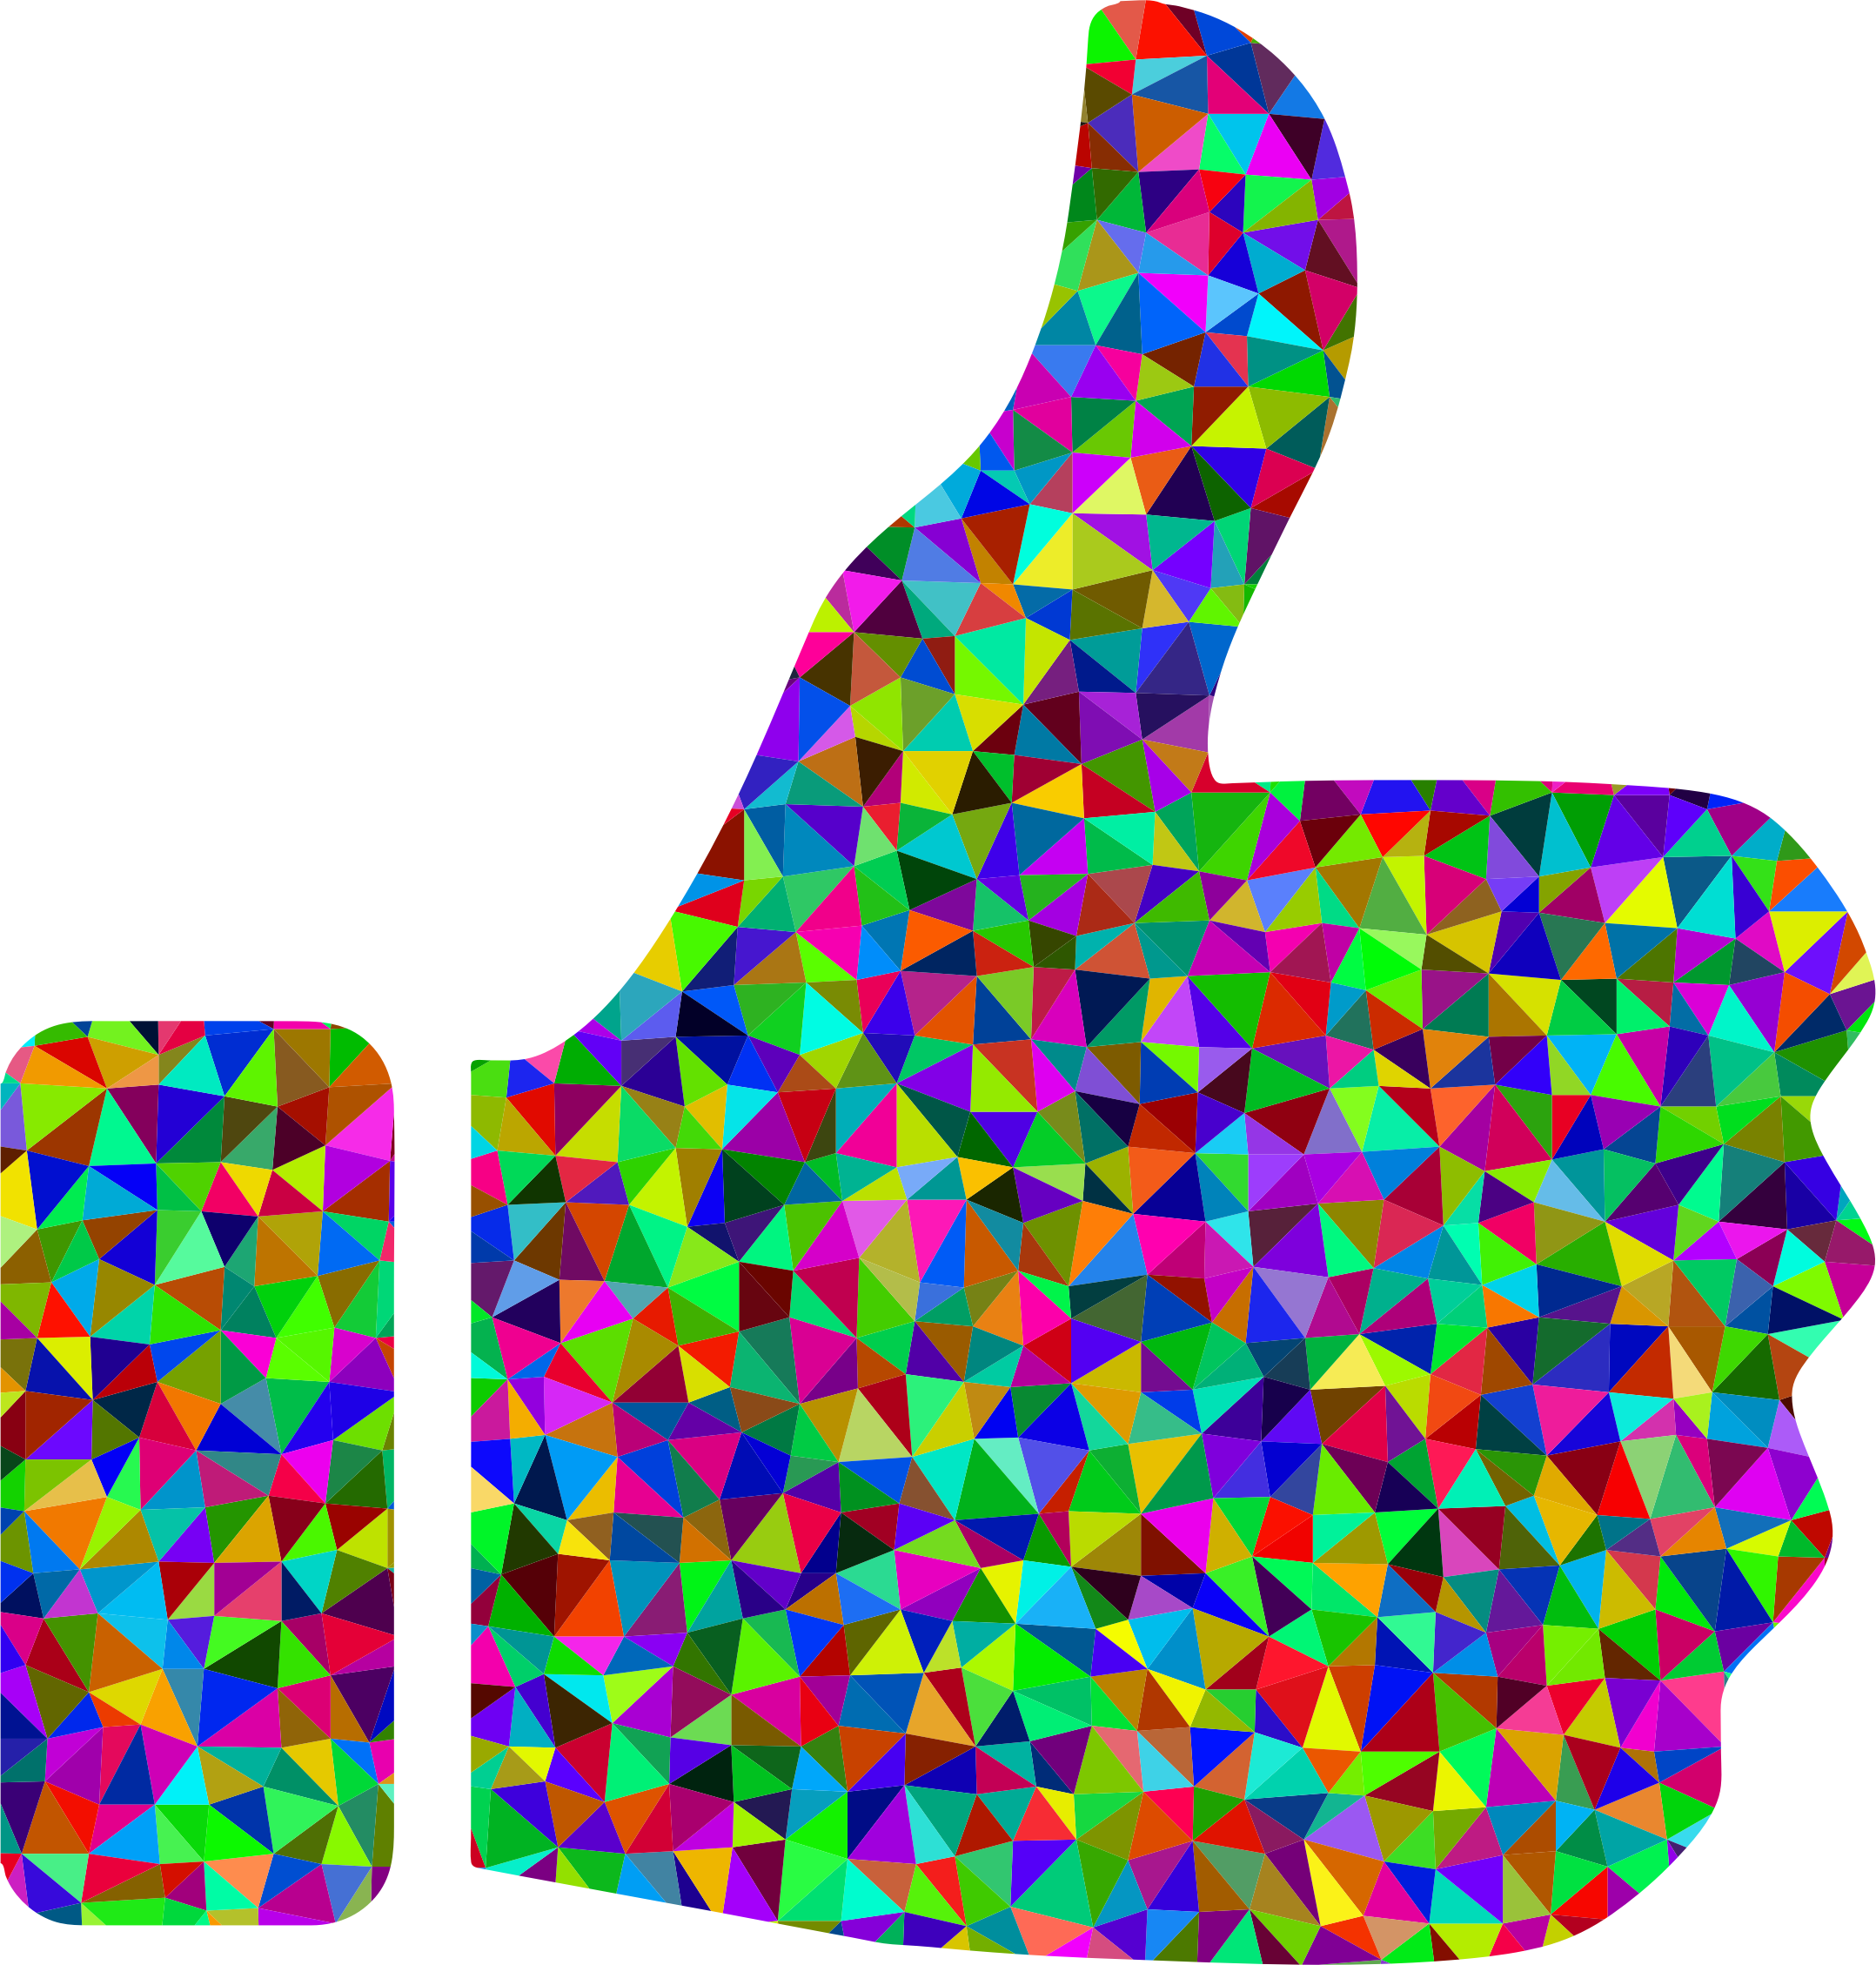 Thumbs up thumbs down clipart vector transparent Prismatic Low Poly Thumbs Up Icons PNG - Free PNG and Icons Downloads vector transparent